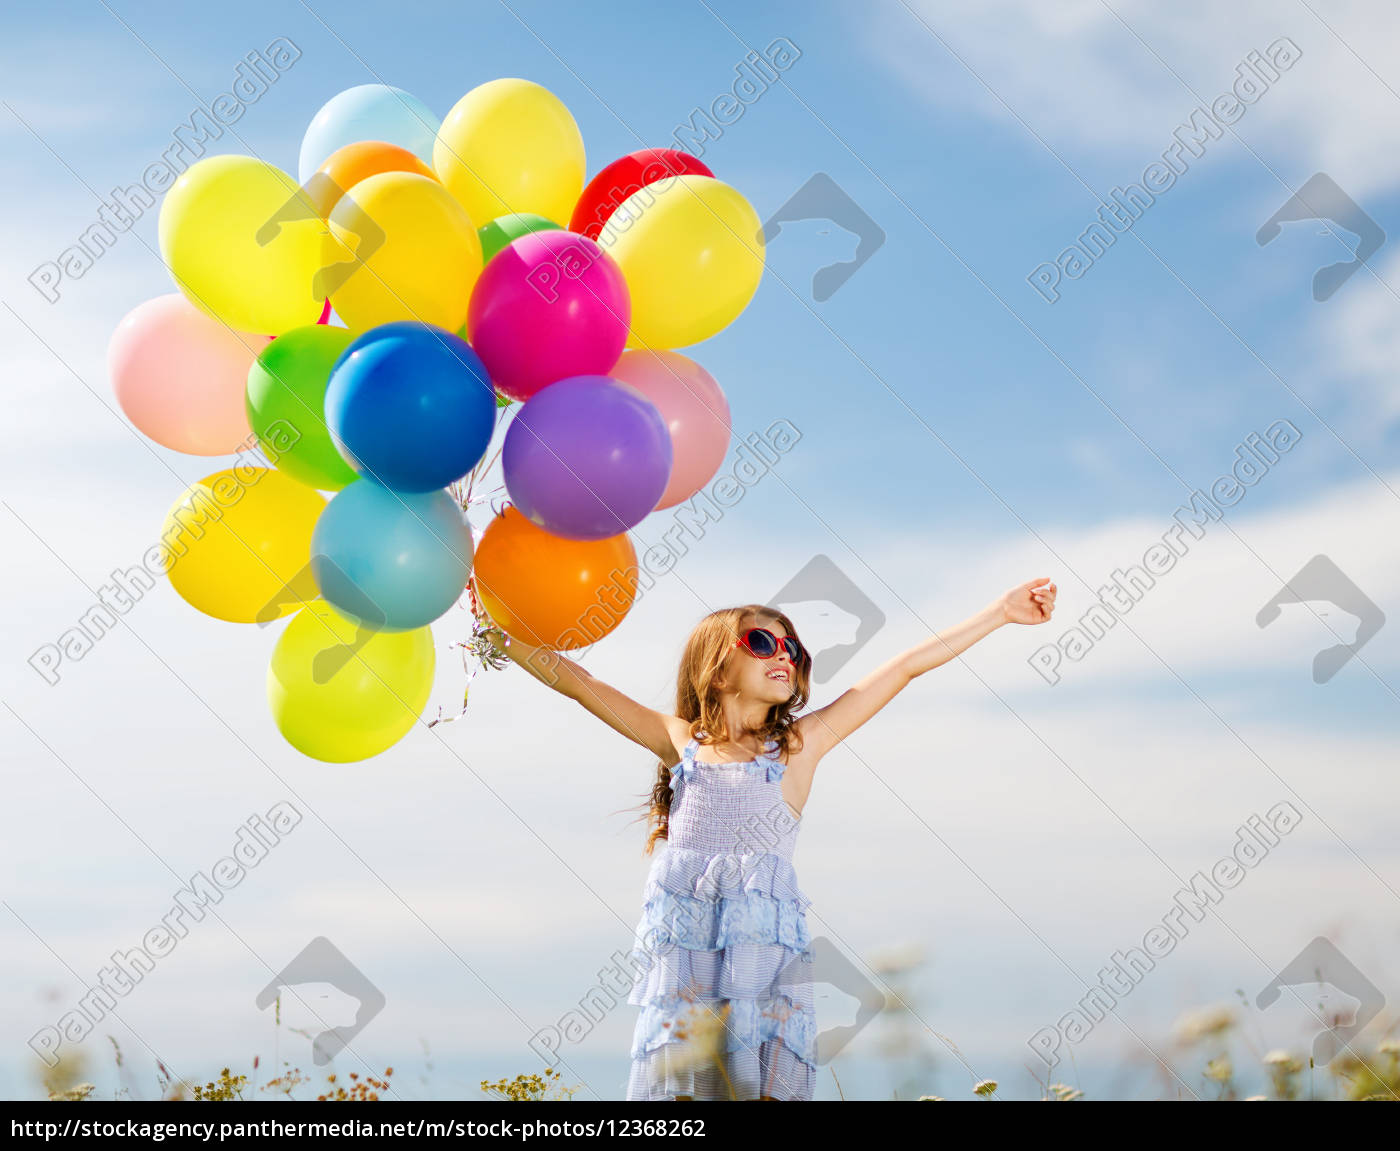 happy, girl, with, colorful, balloons - 12368262